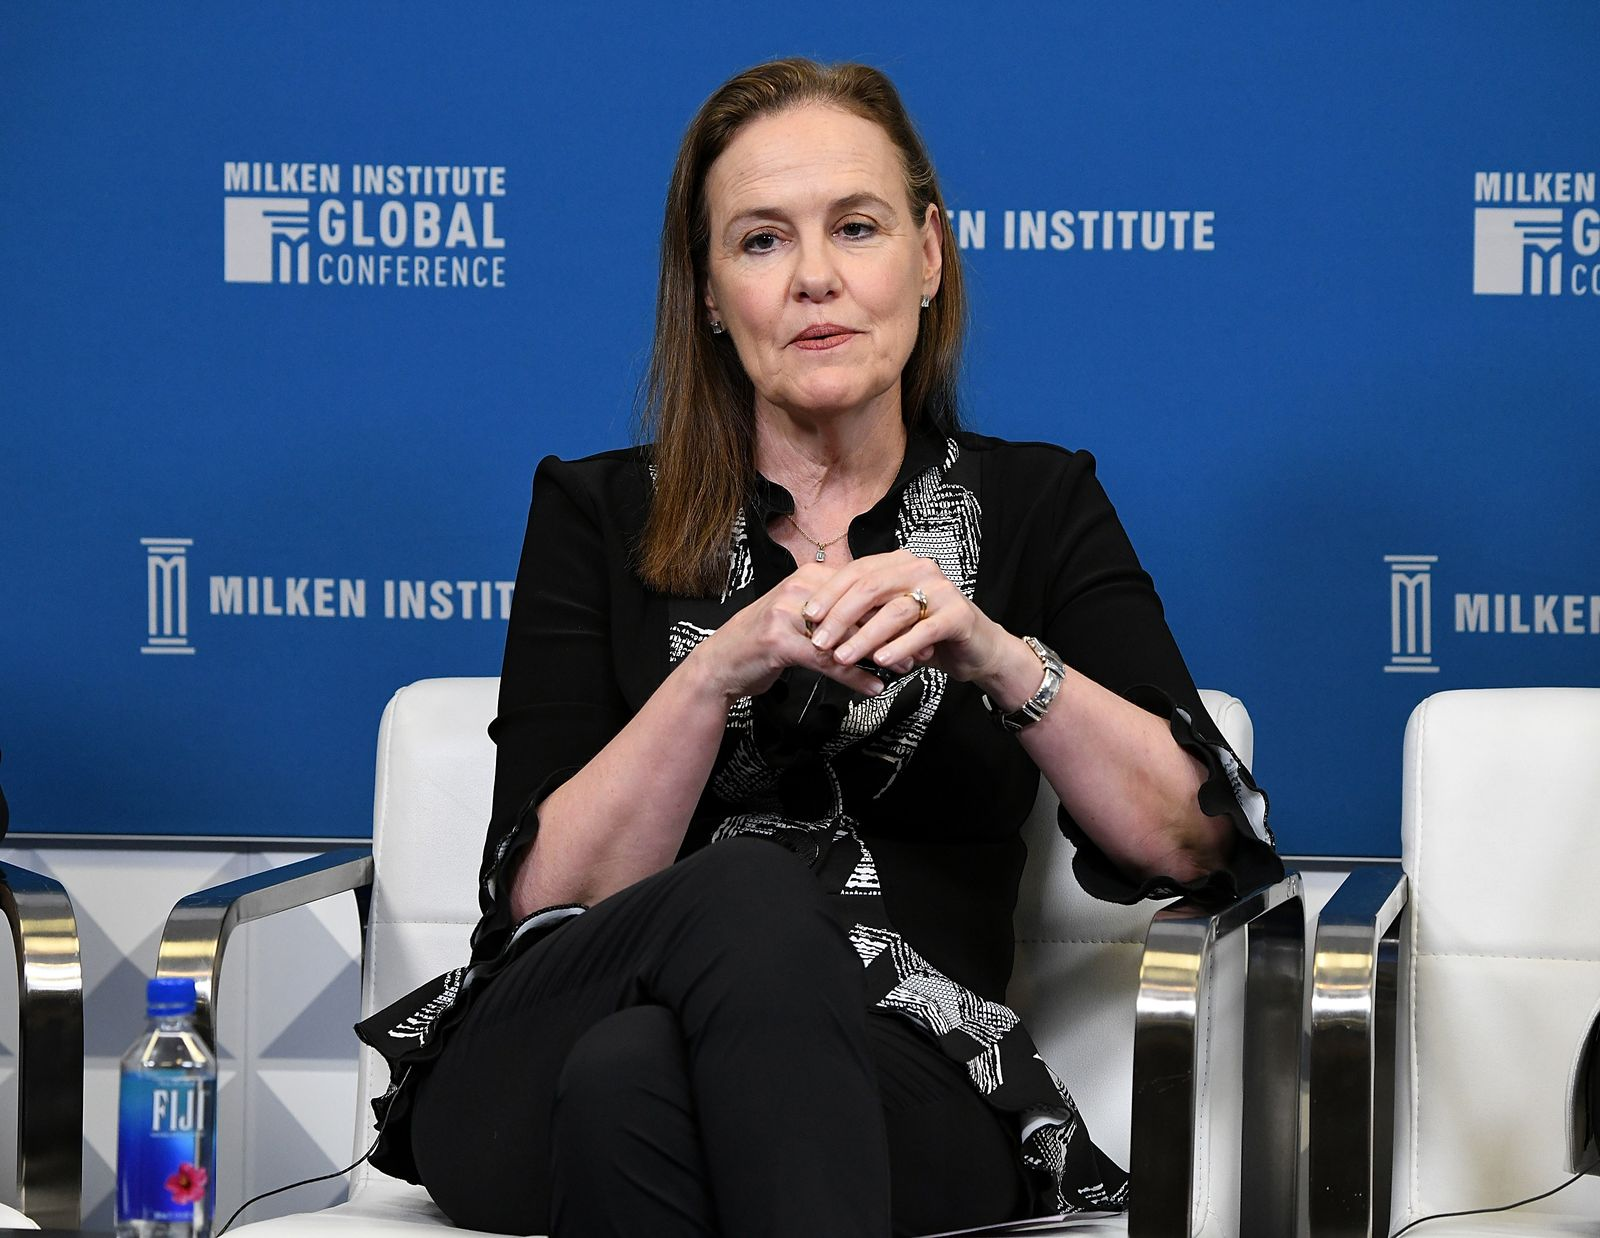 Milken Institute 2019 Global Conference